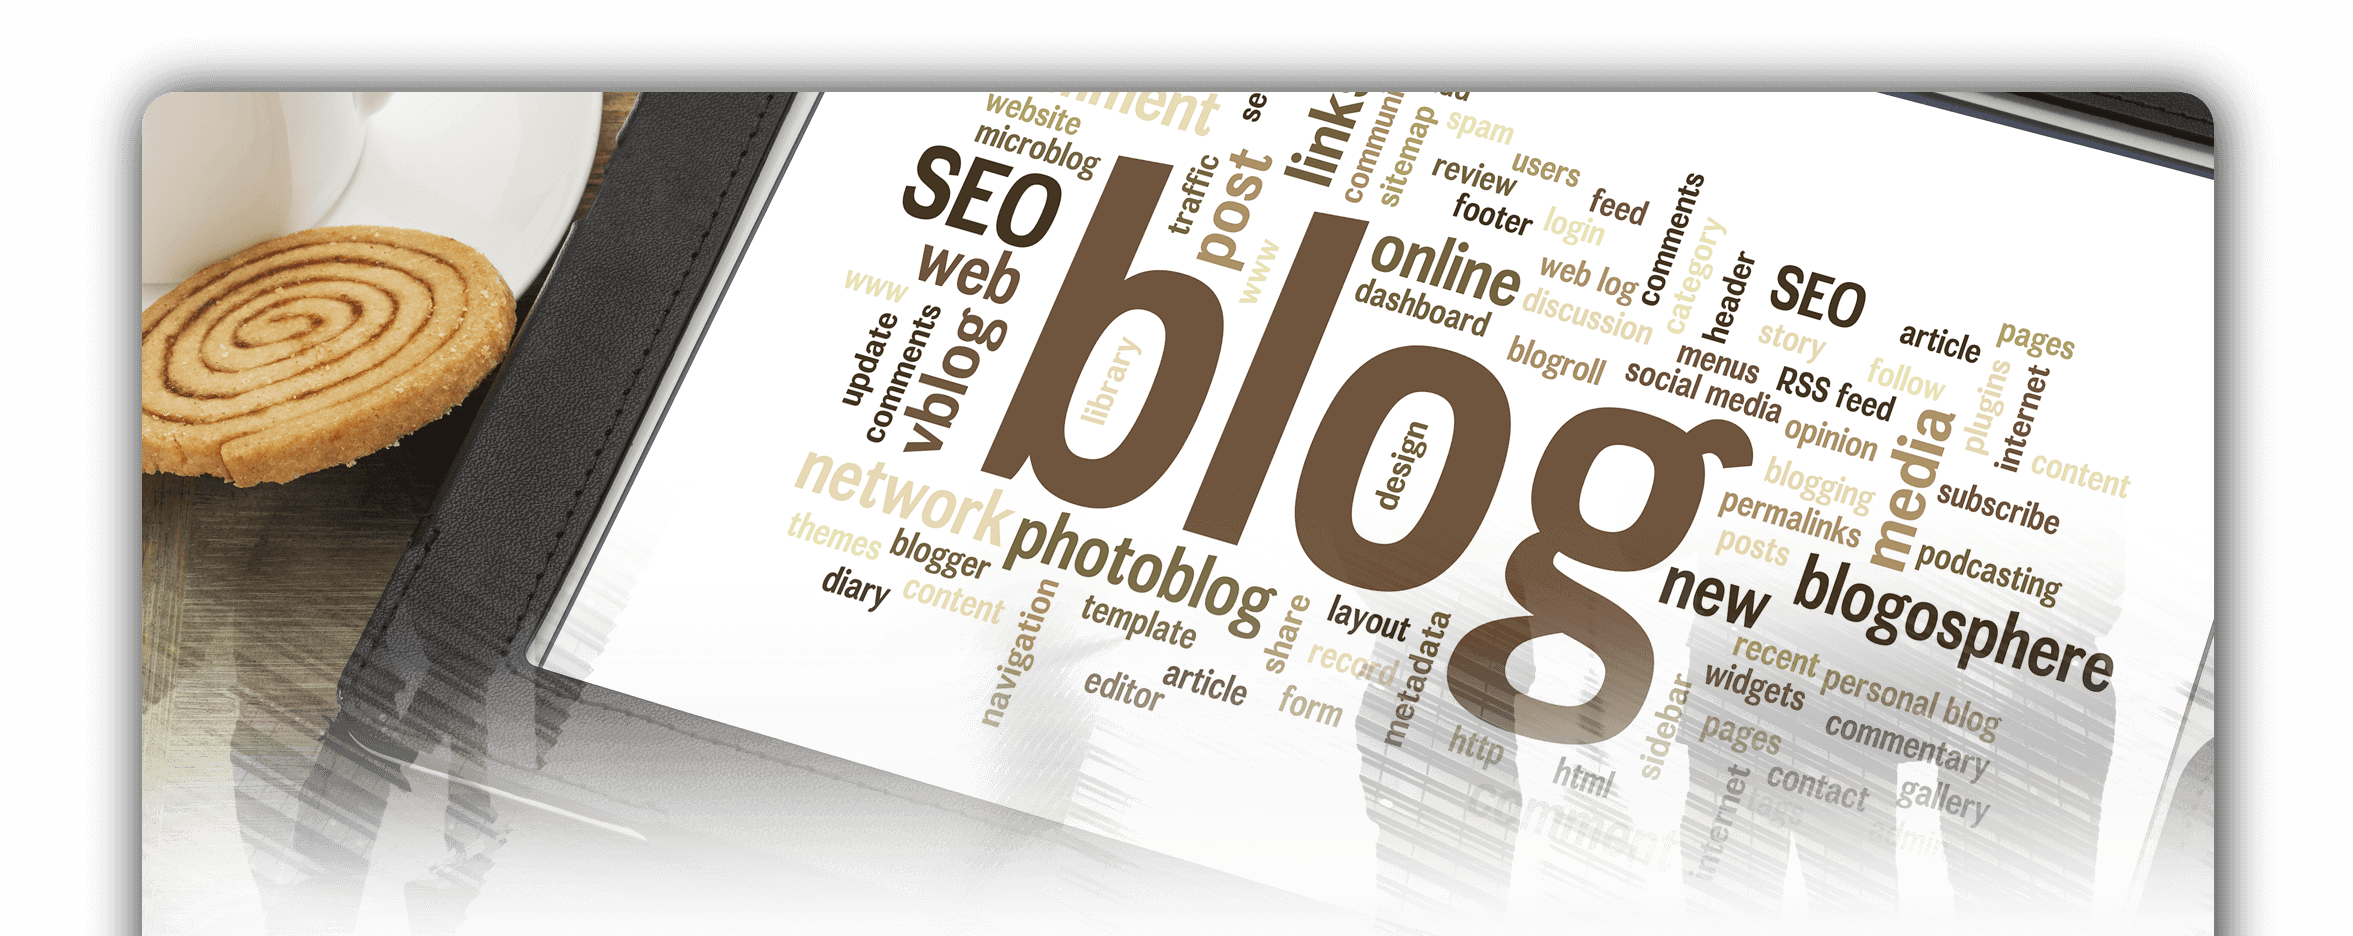 Blog - Certification Seo Pro